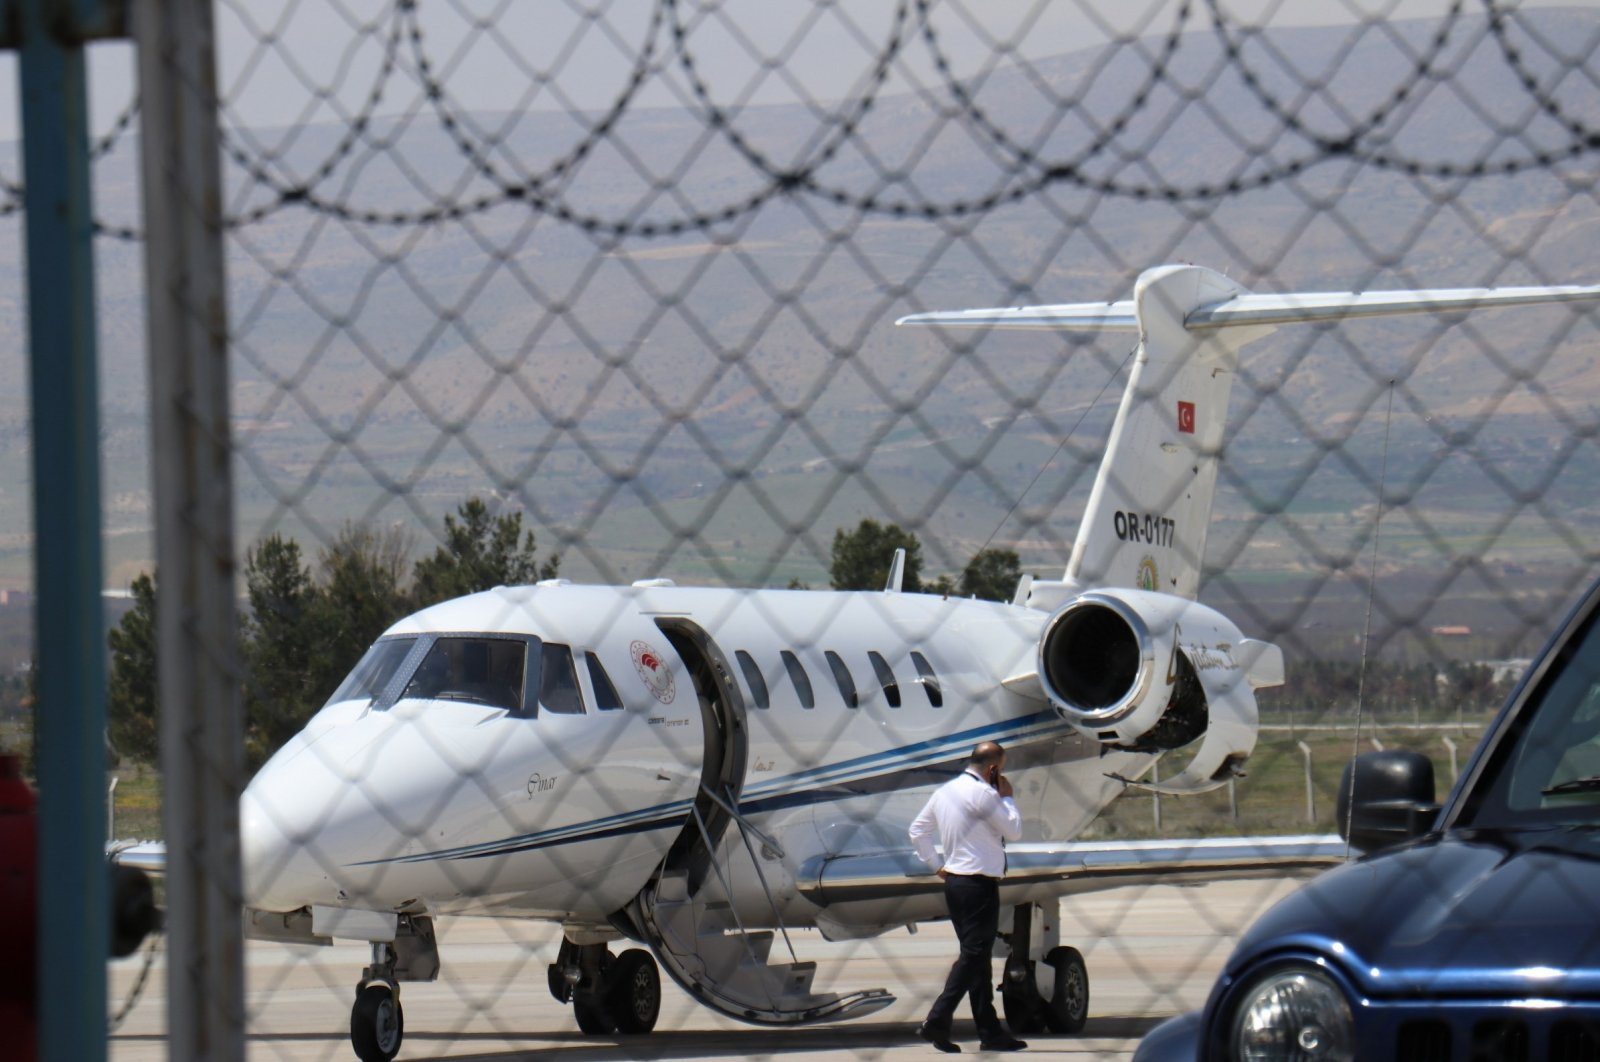 A view of the plane at Erhaç Airport, in Malatya, eastern Turkey, April 16, 2021. (IHA Photo)